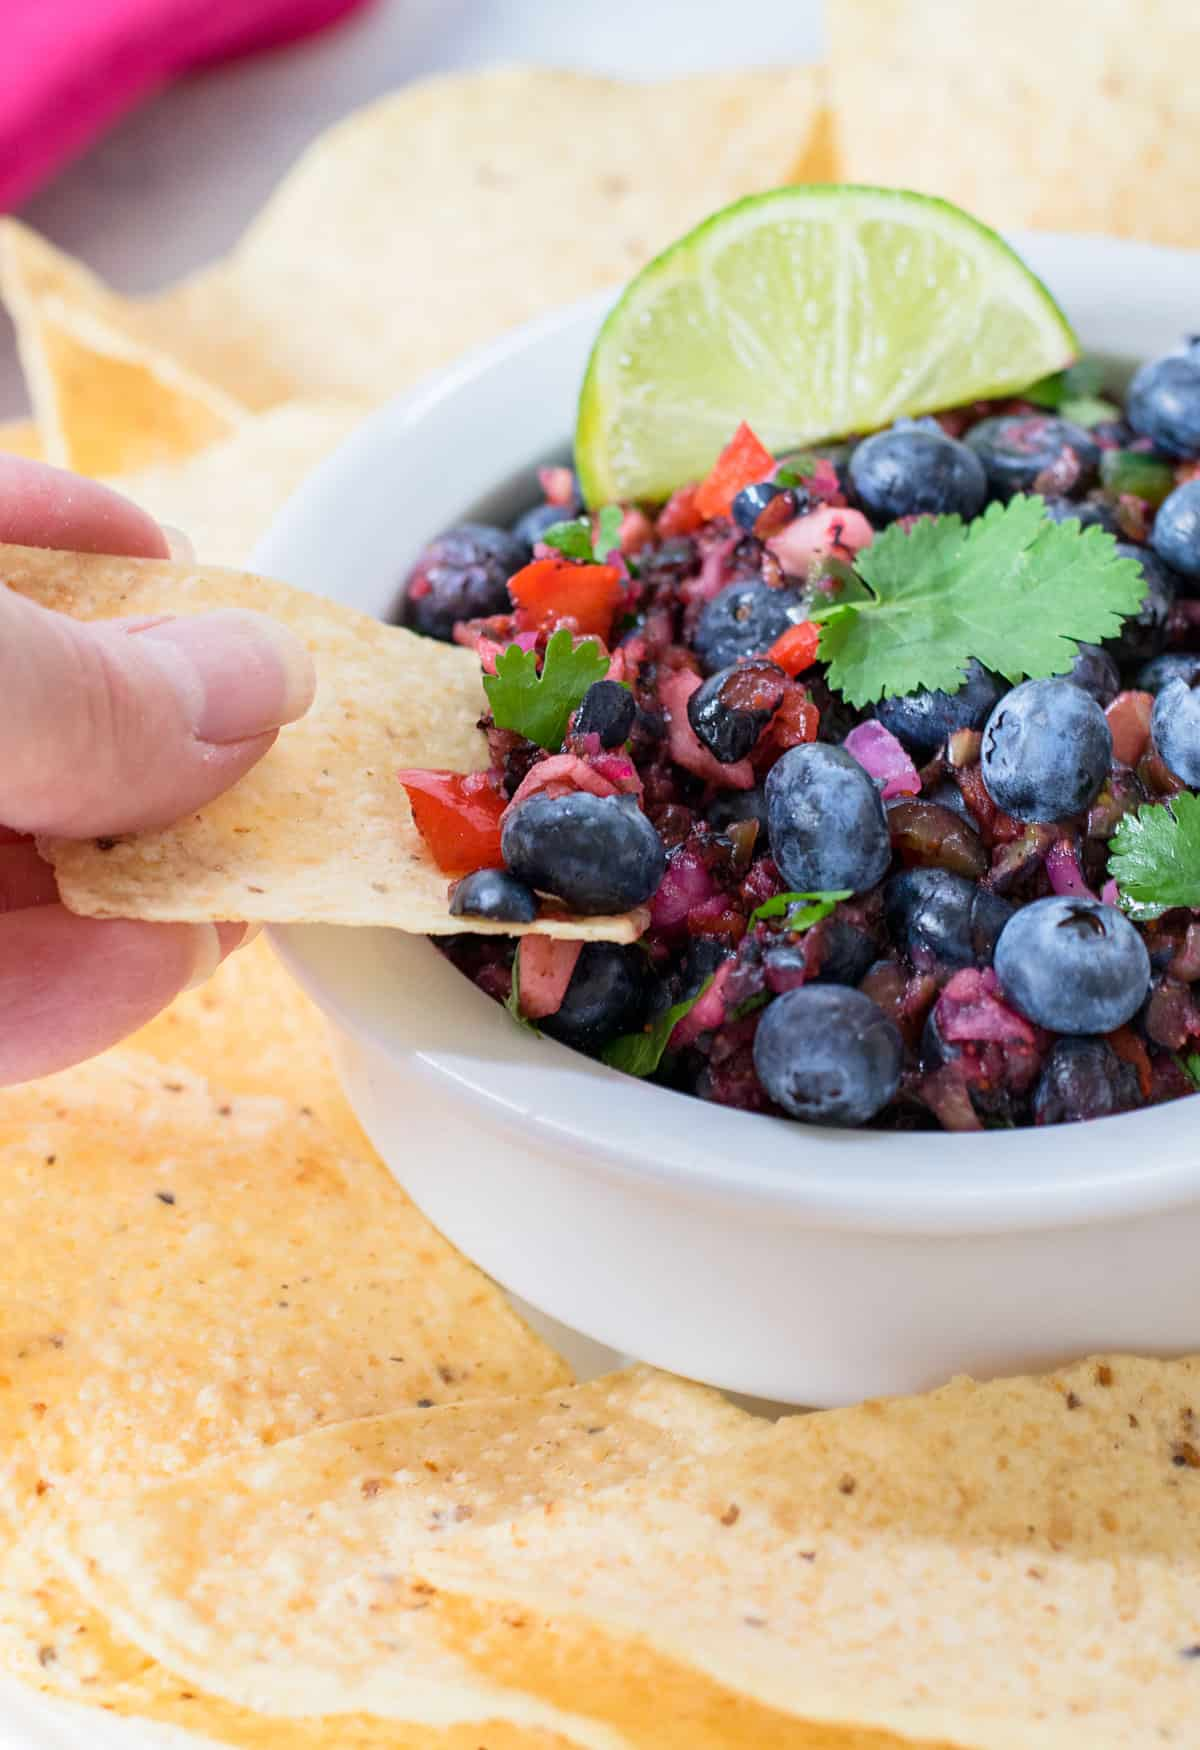 hand dipping tortilla chip into blueberry salsa